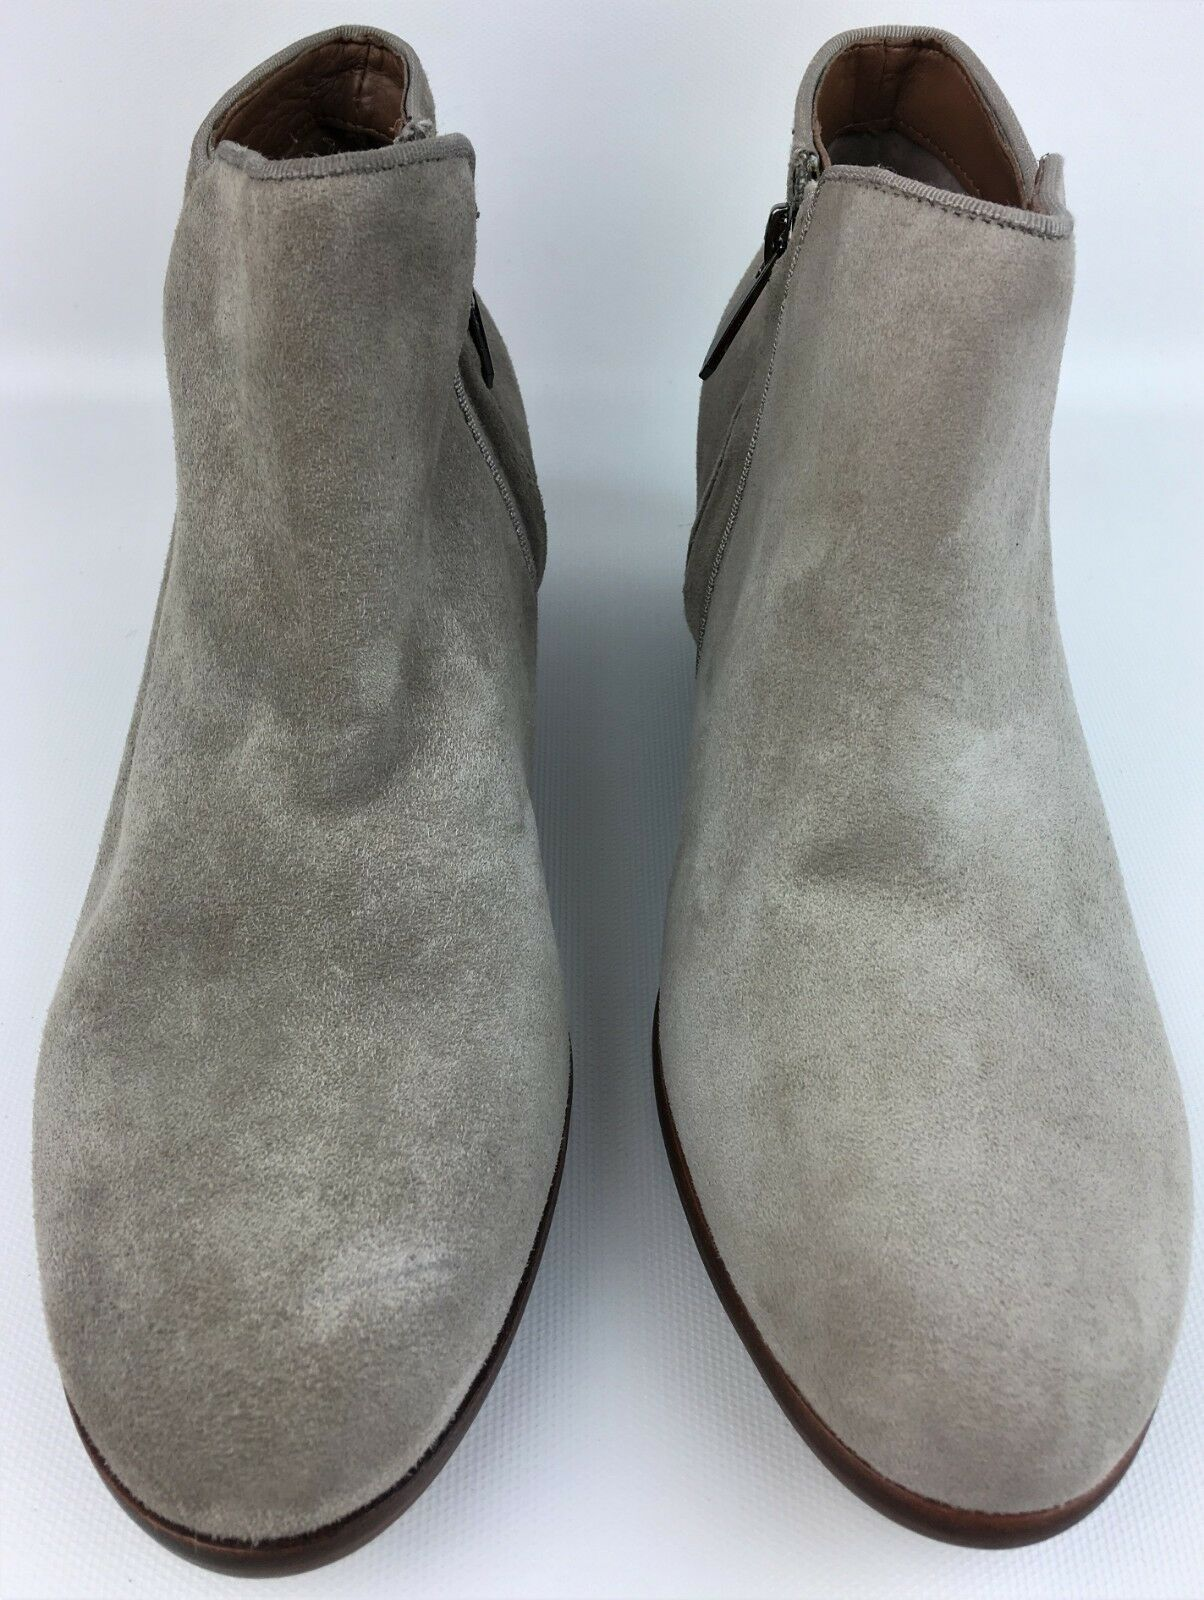 Sam Edelman 'Petty' 'Petty' 'Petty' Putty Gray Suede Ankle Heeled Booties sz: US 7 881353